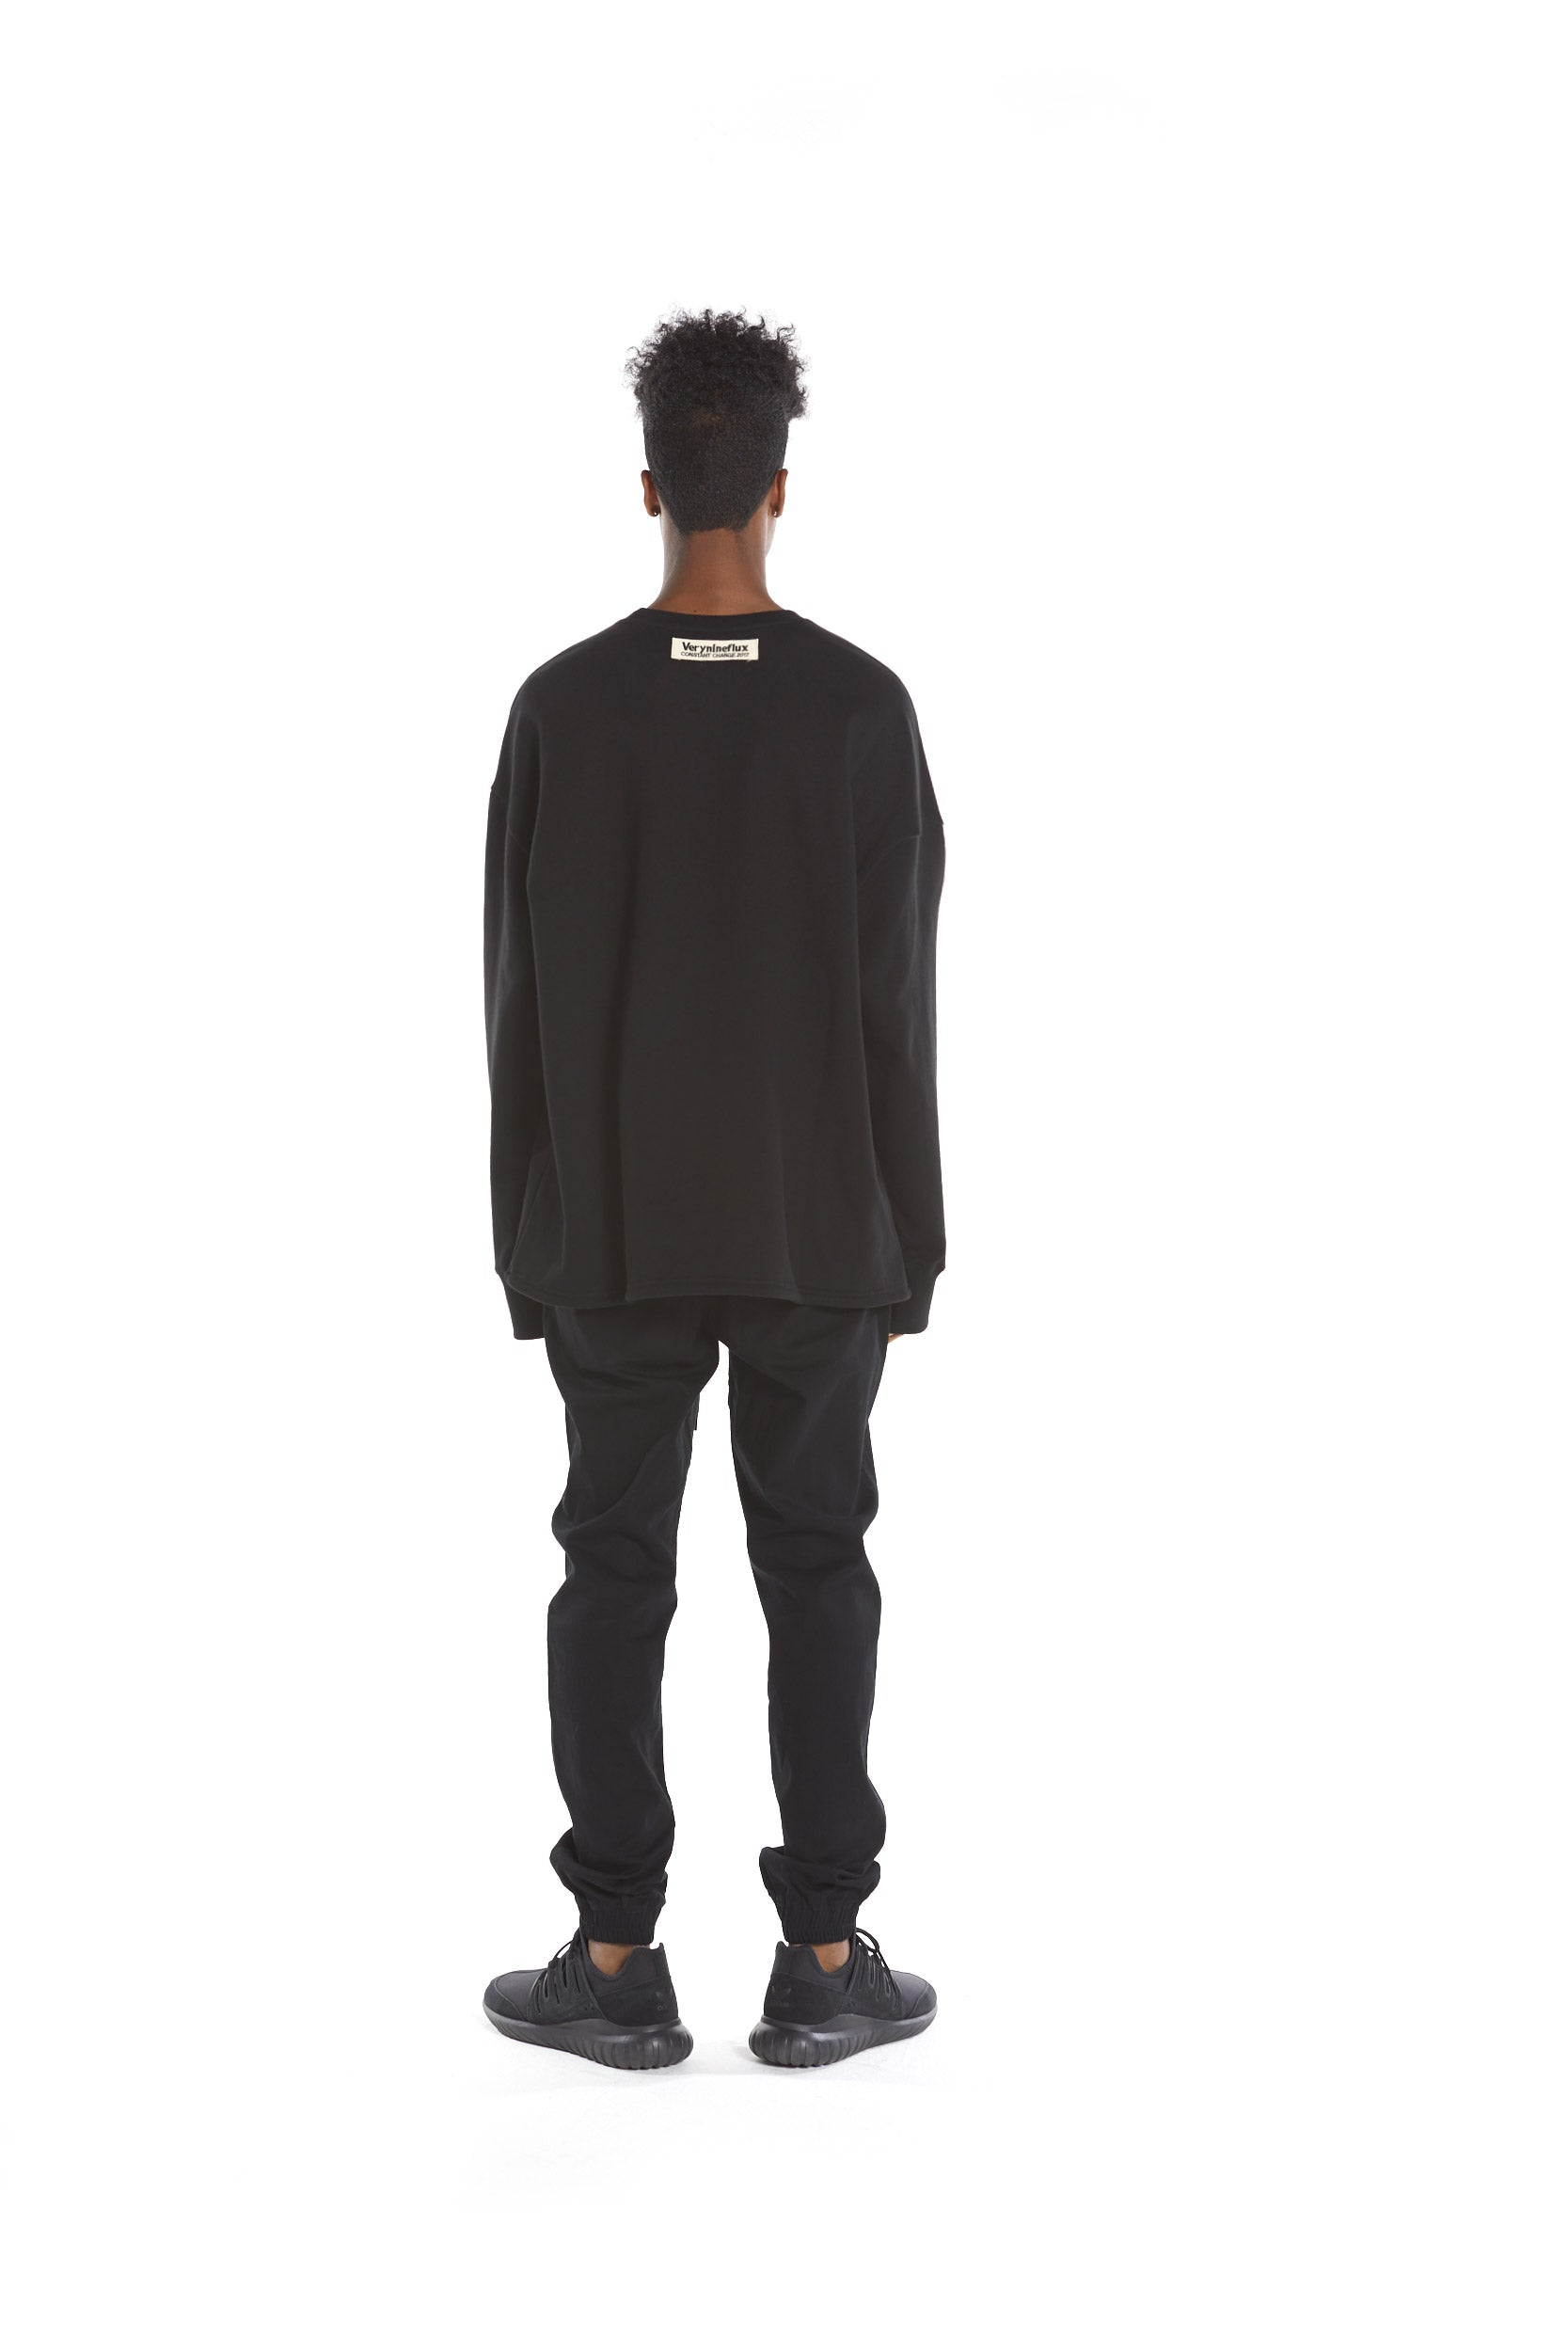 Great Crewneck - Black